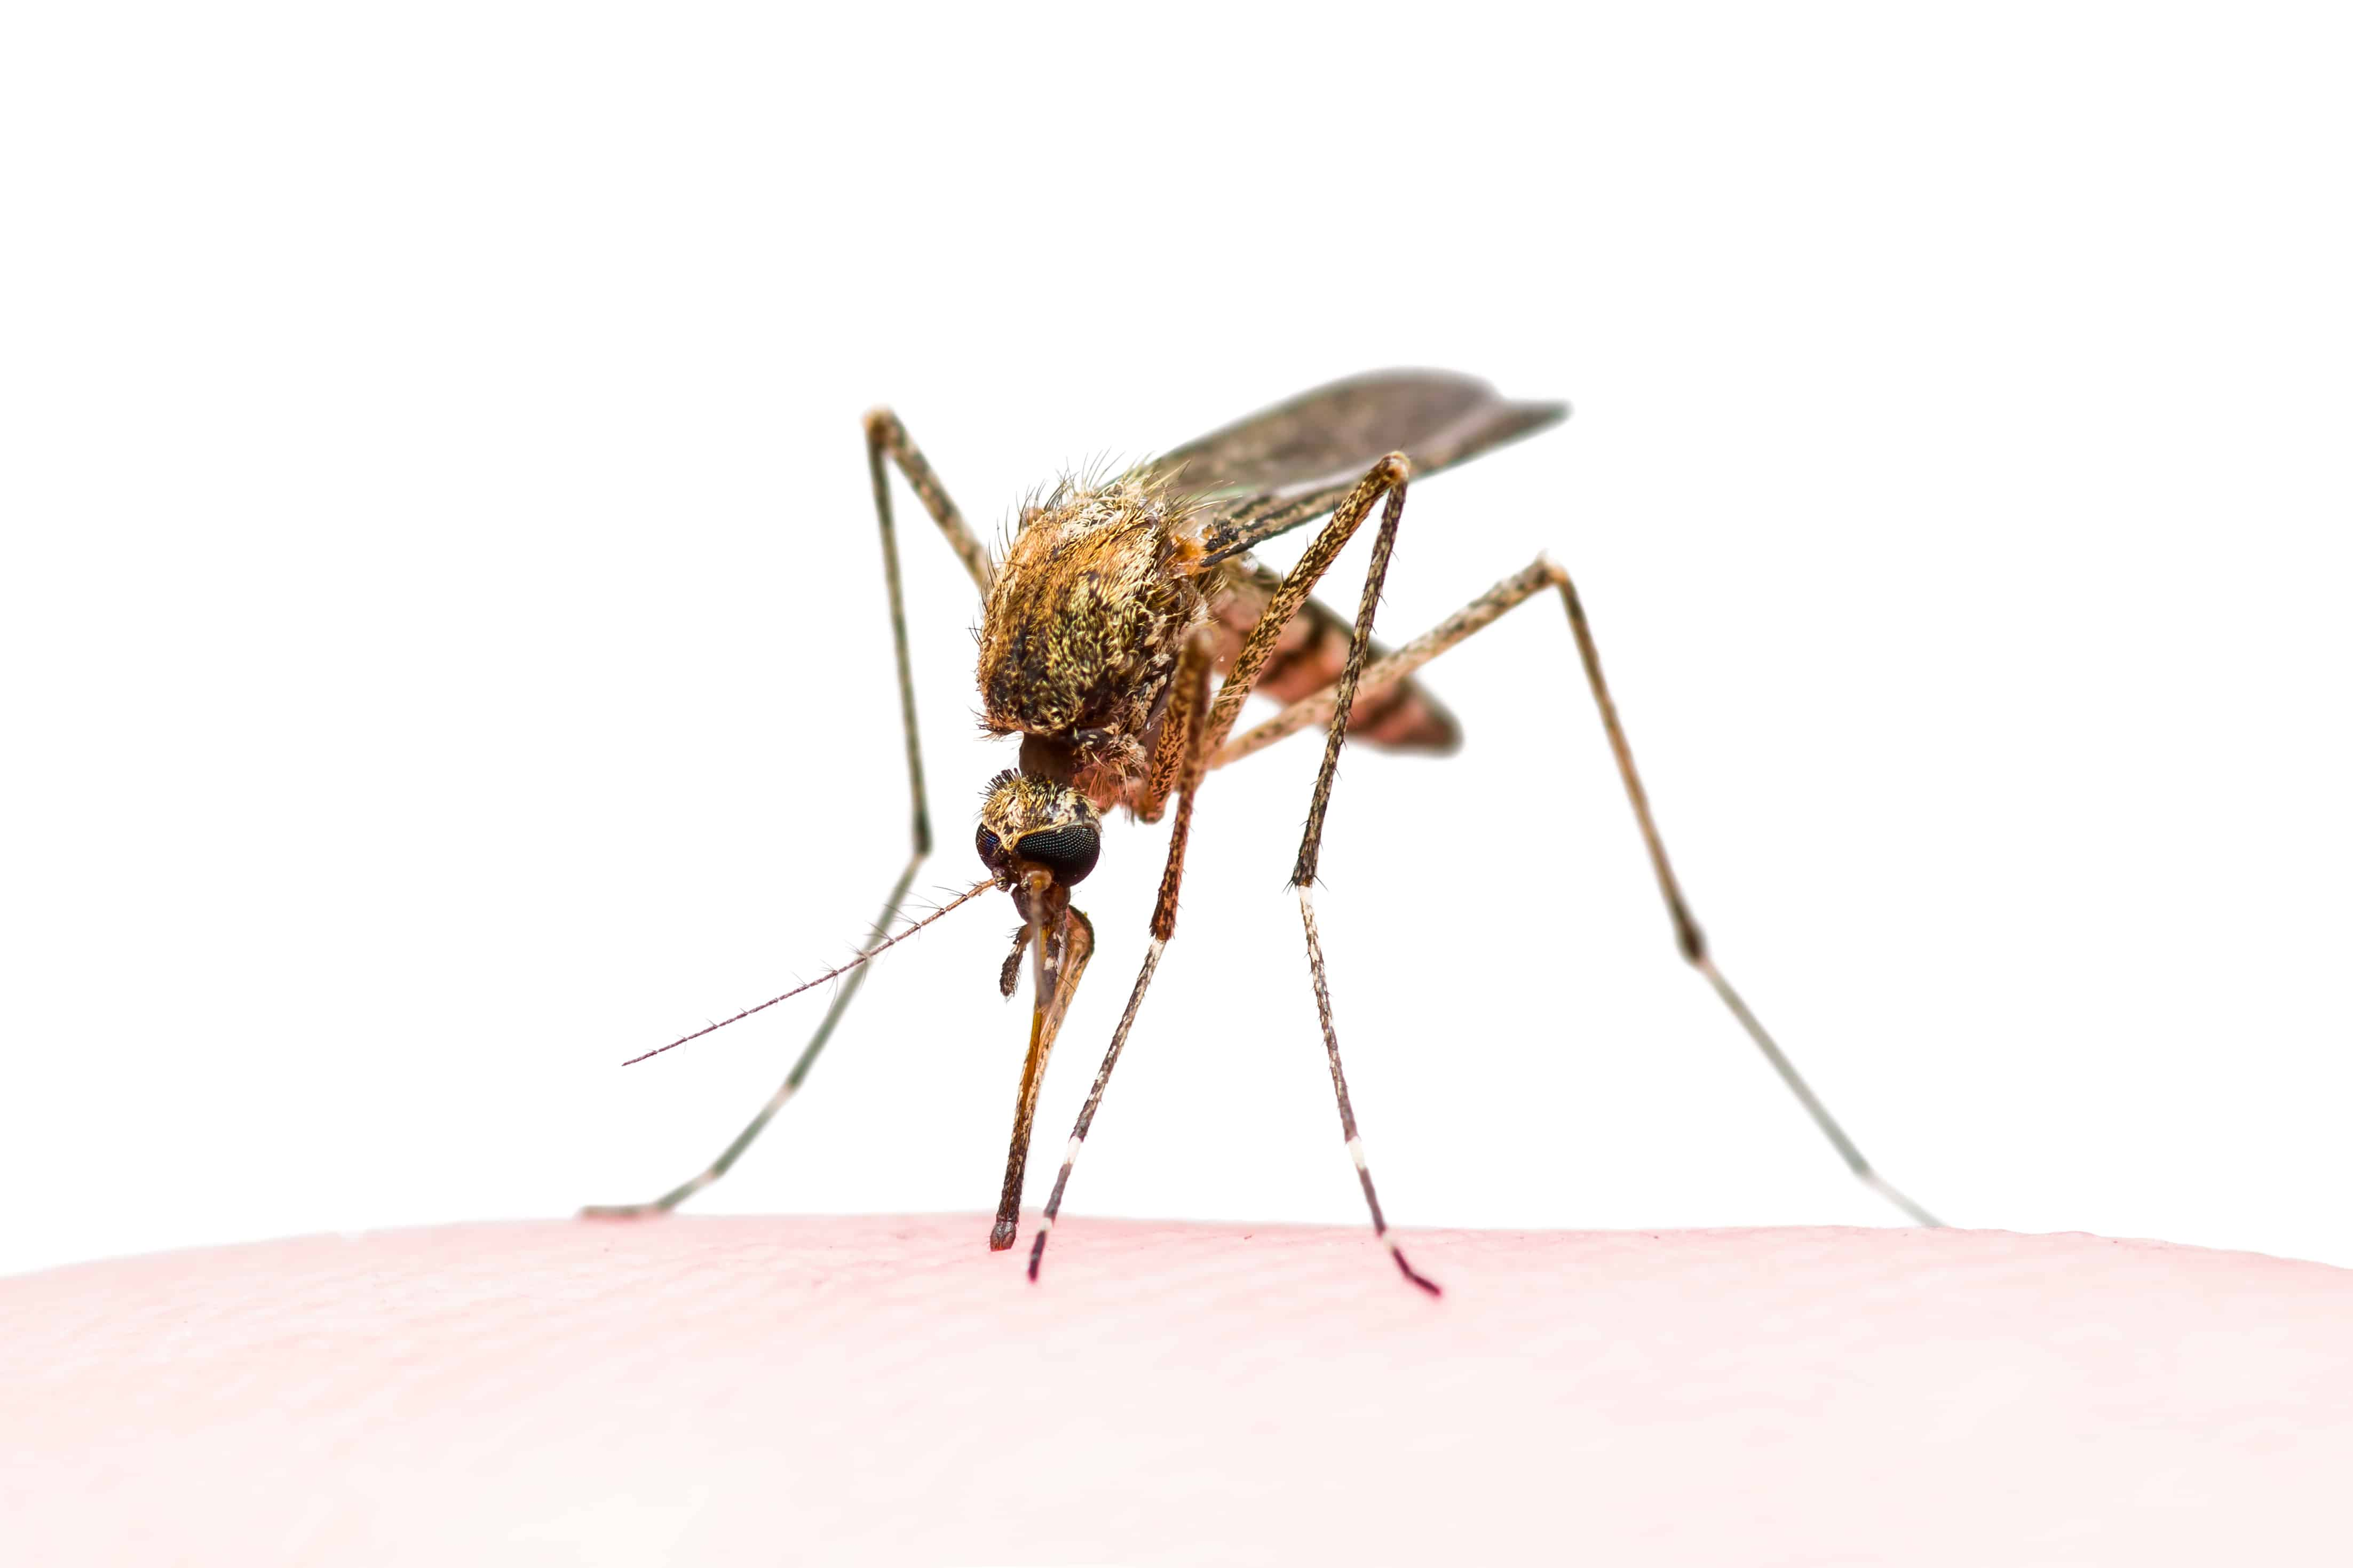 Weekly Digest: COVID-19 in malaria-endemic region; Geographic disparities and impact of COVID-19; Antimicrobial resistance among children in Africa: need for paediatric clinical trials; Utility of broad-spectrum antibiotics for diagnosing pulmonary tuberculosis in adults.